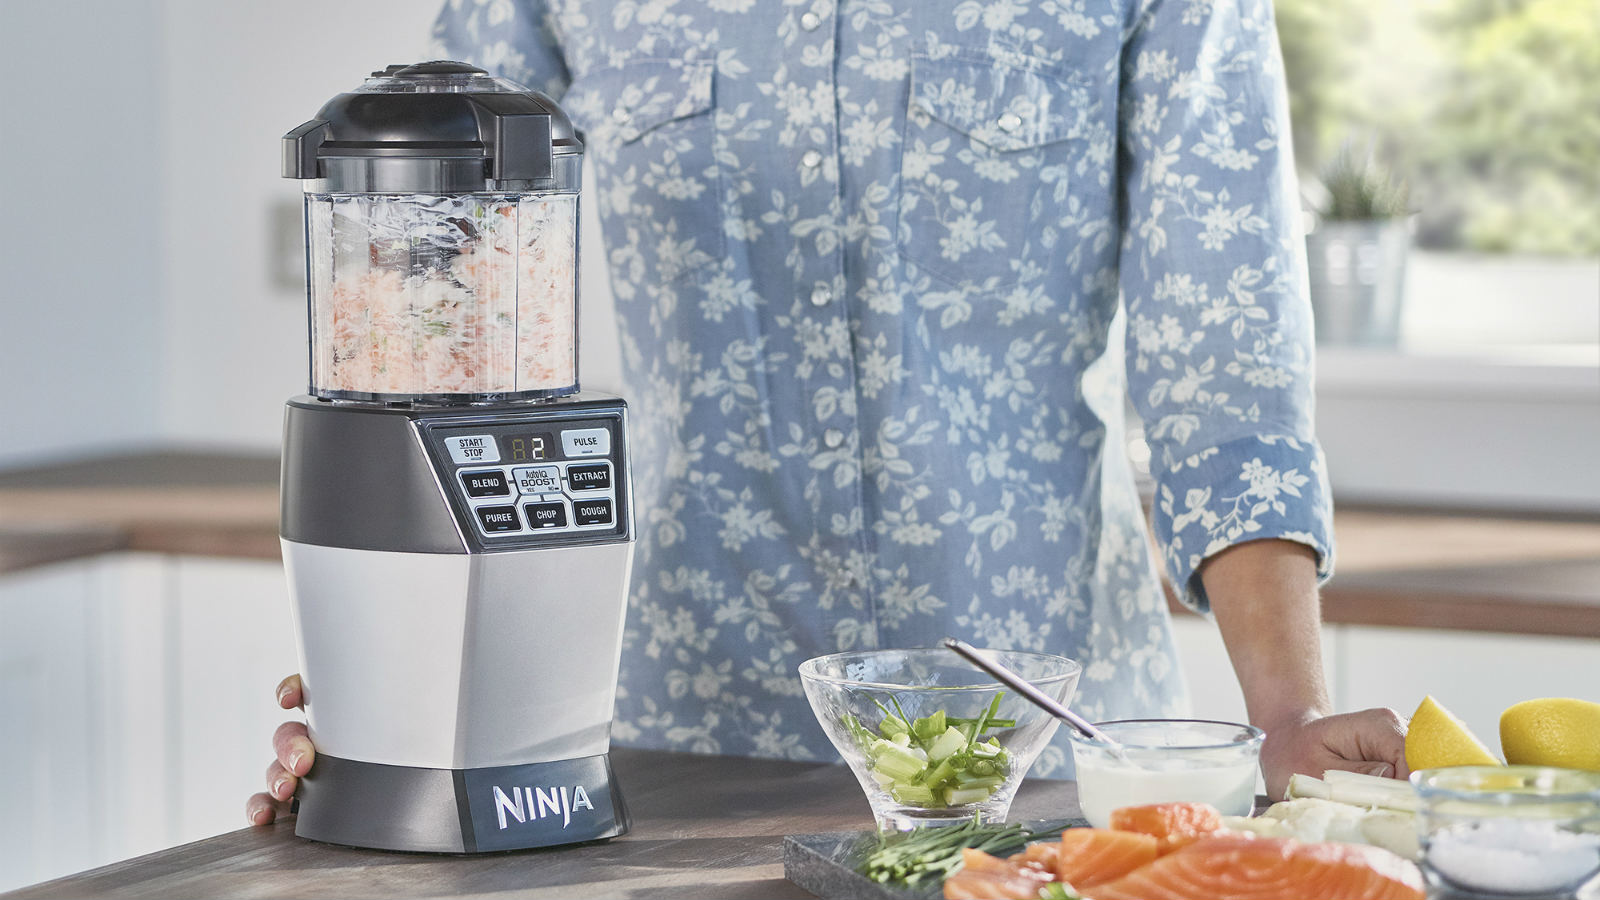 nn100uk-nutri-ninja-nutri-bowl-duo-2